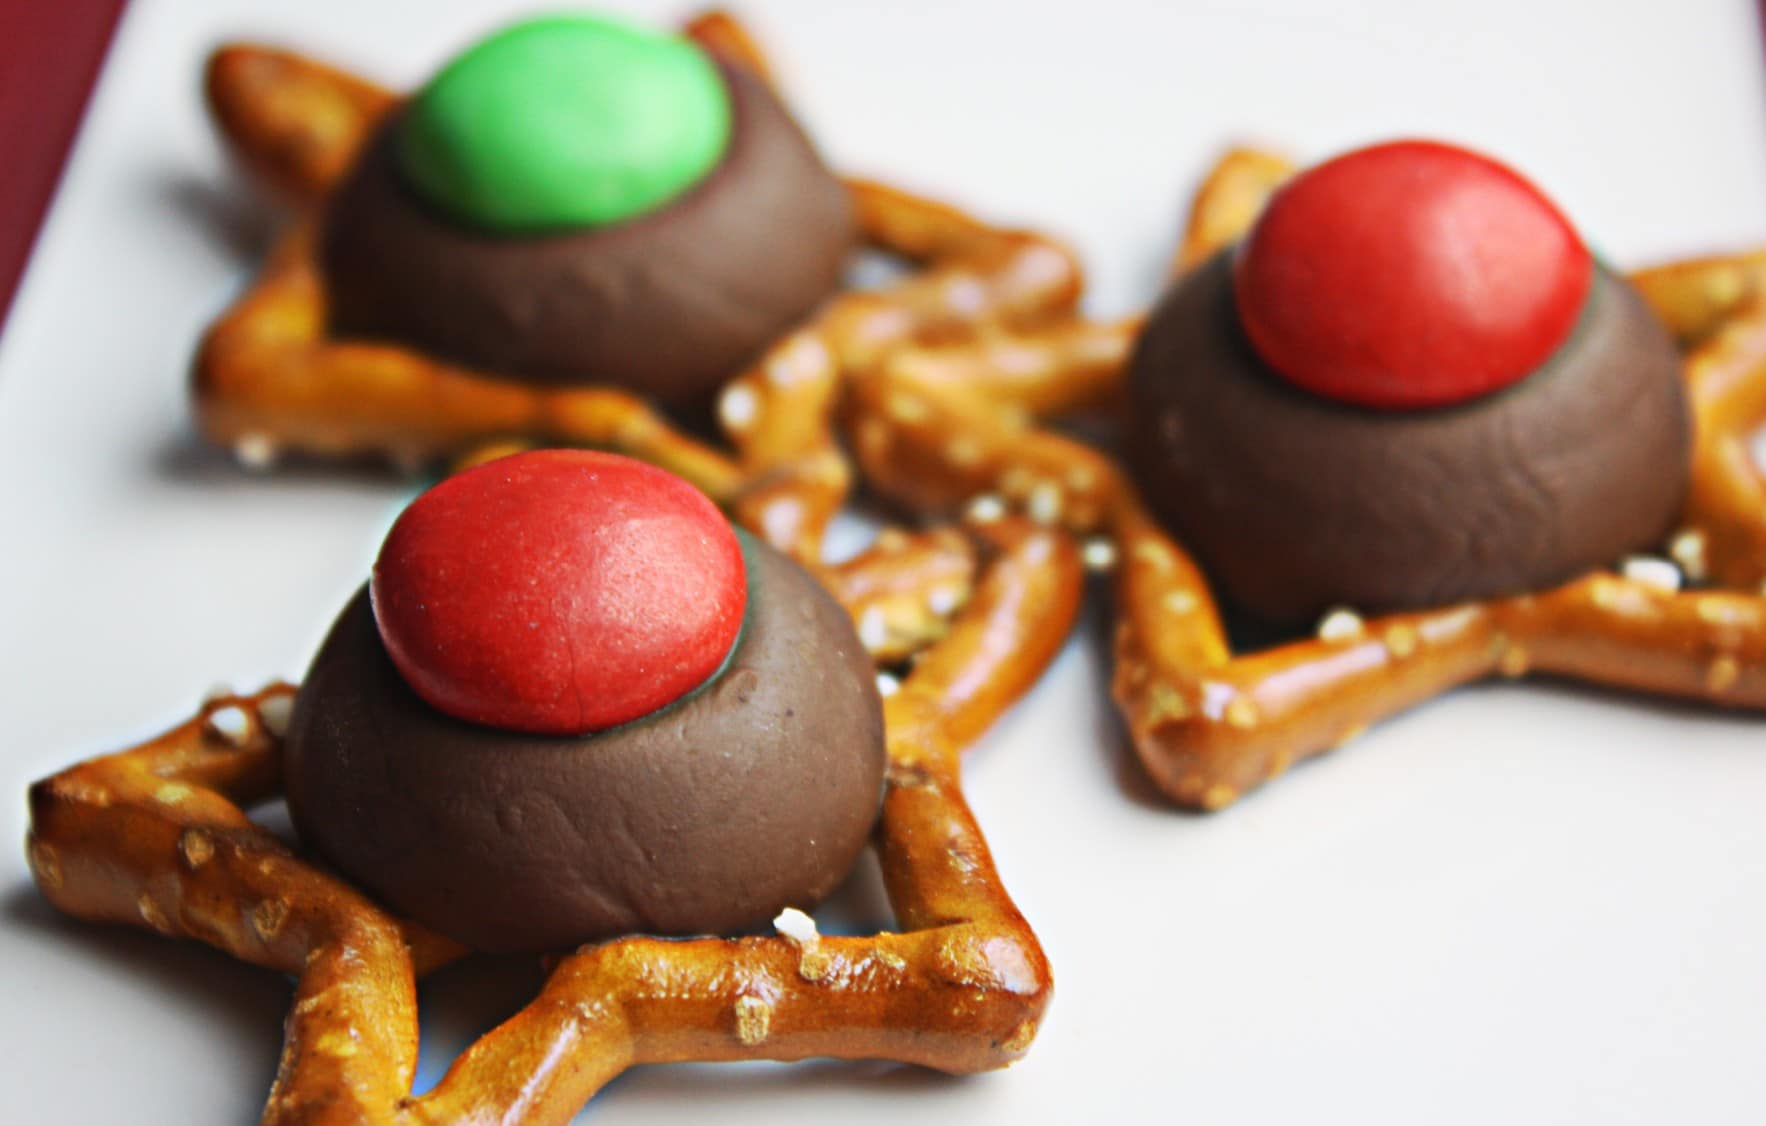 How to Make Quick and Easy Christmas Pretzel Cookies